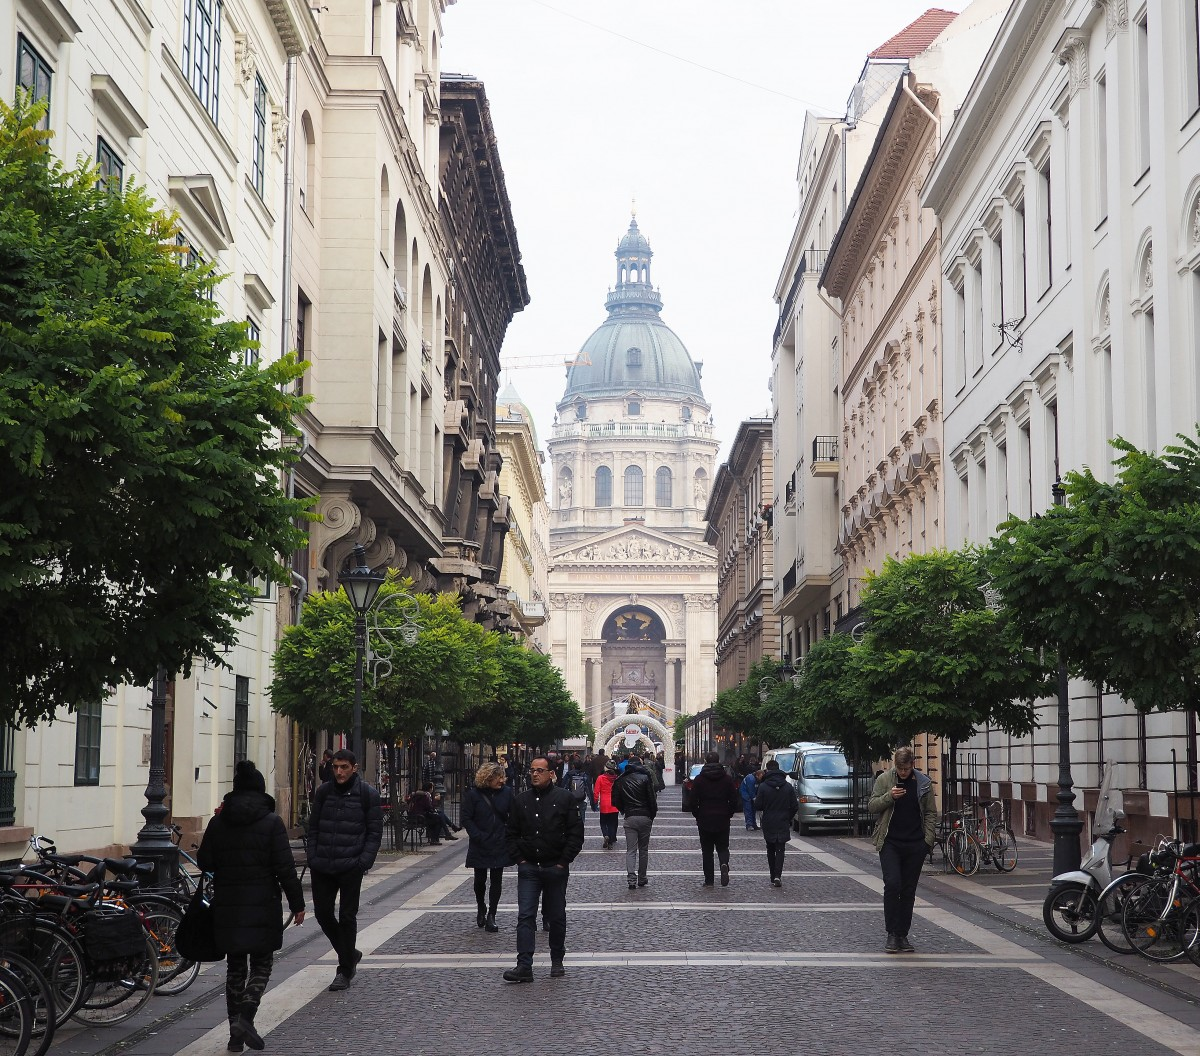 Capital of Hungary, Budapest